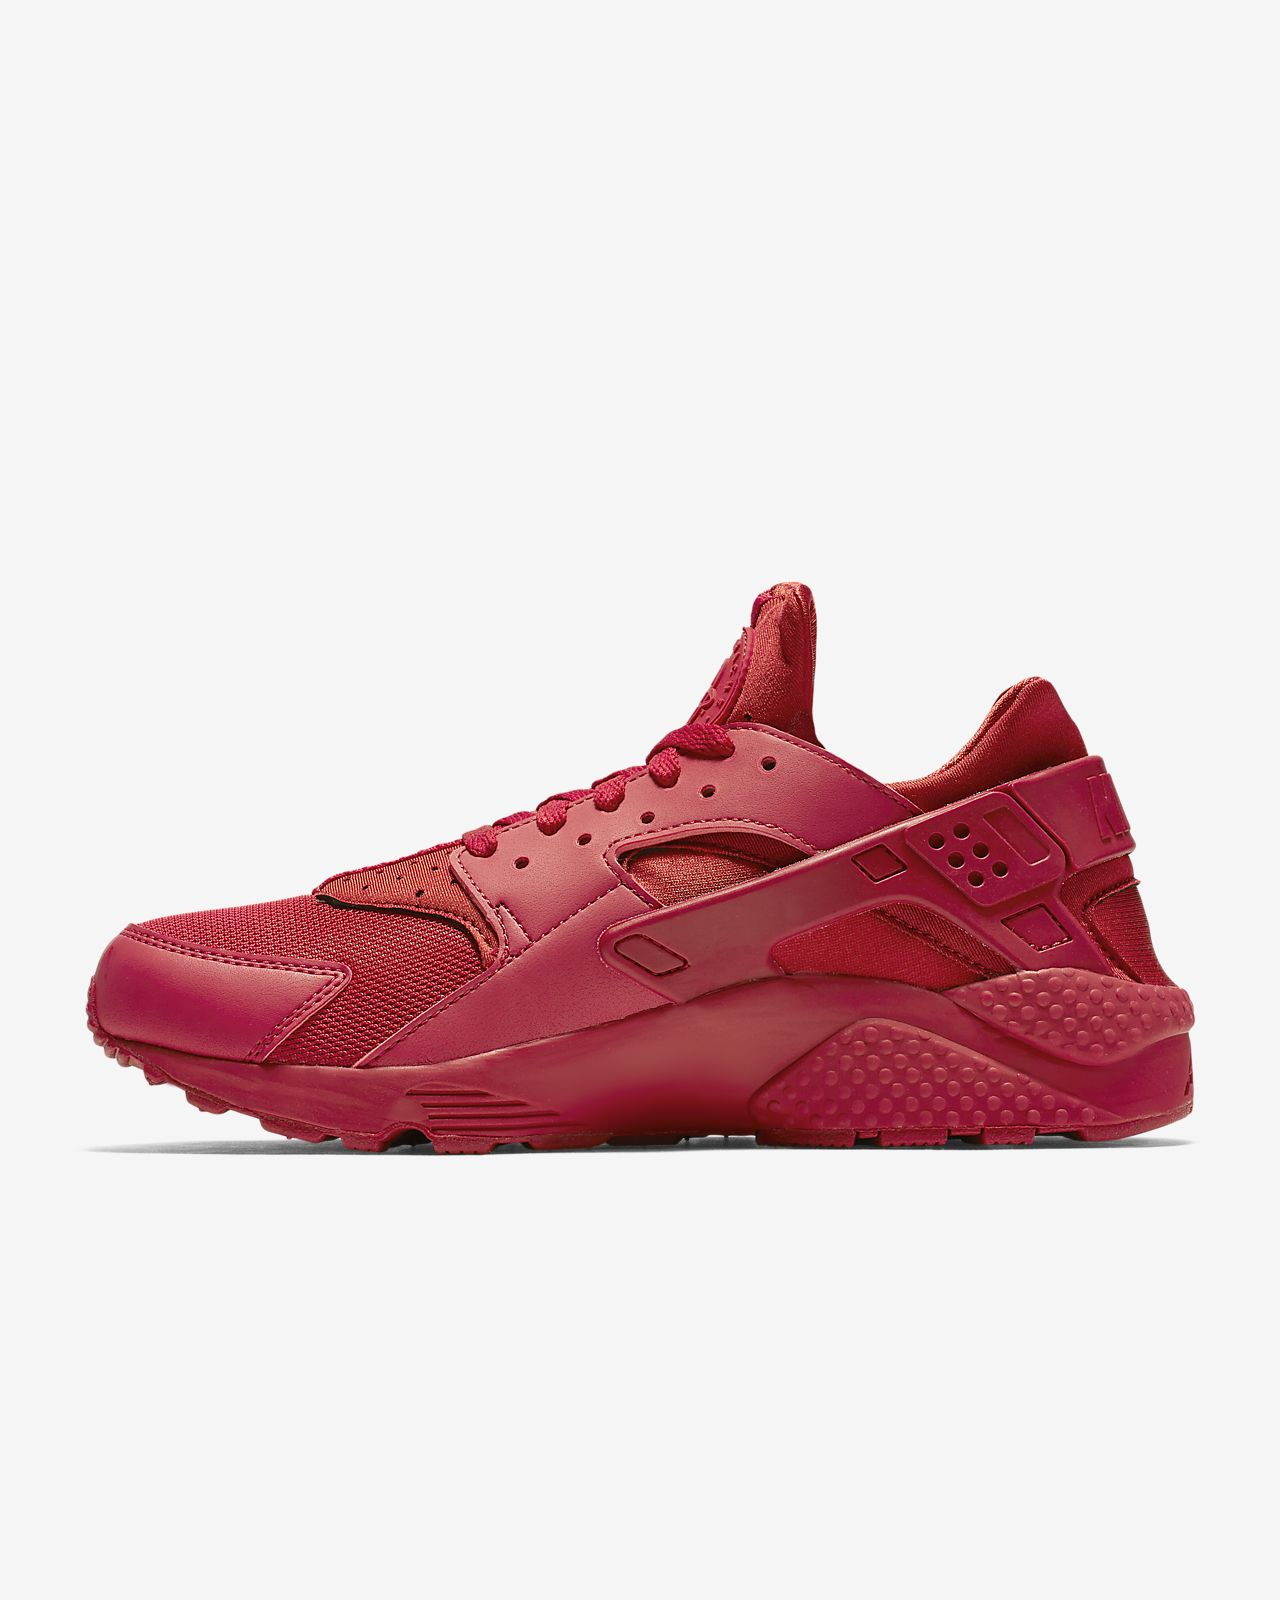 new product f80ef 2af4b ... Nike Air Huarache Men s Shoe